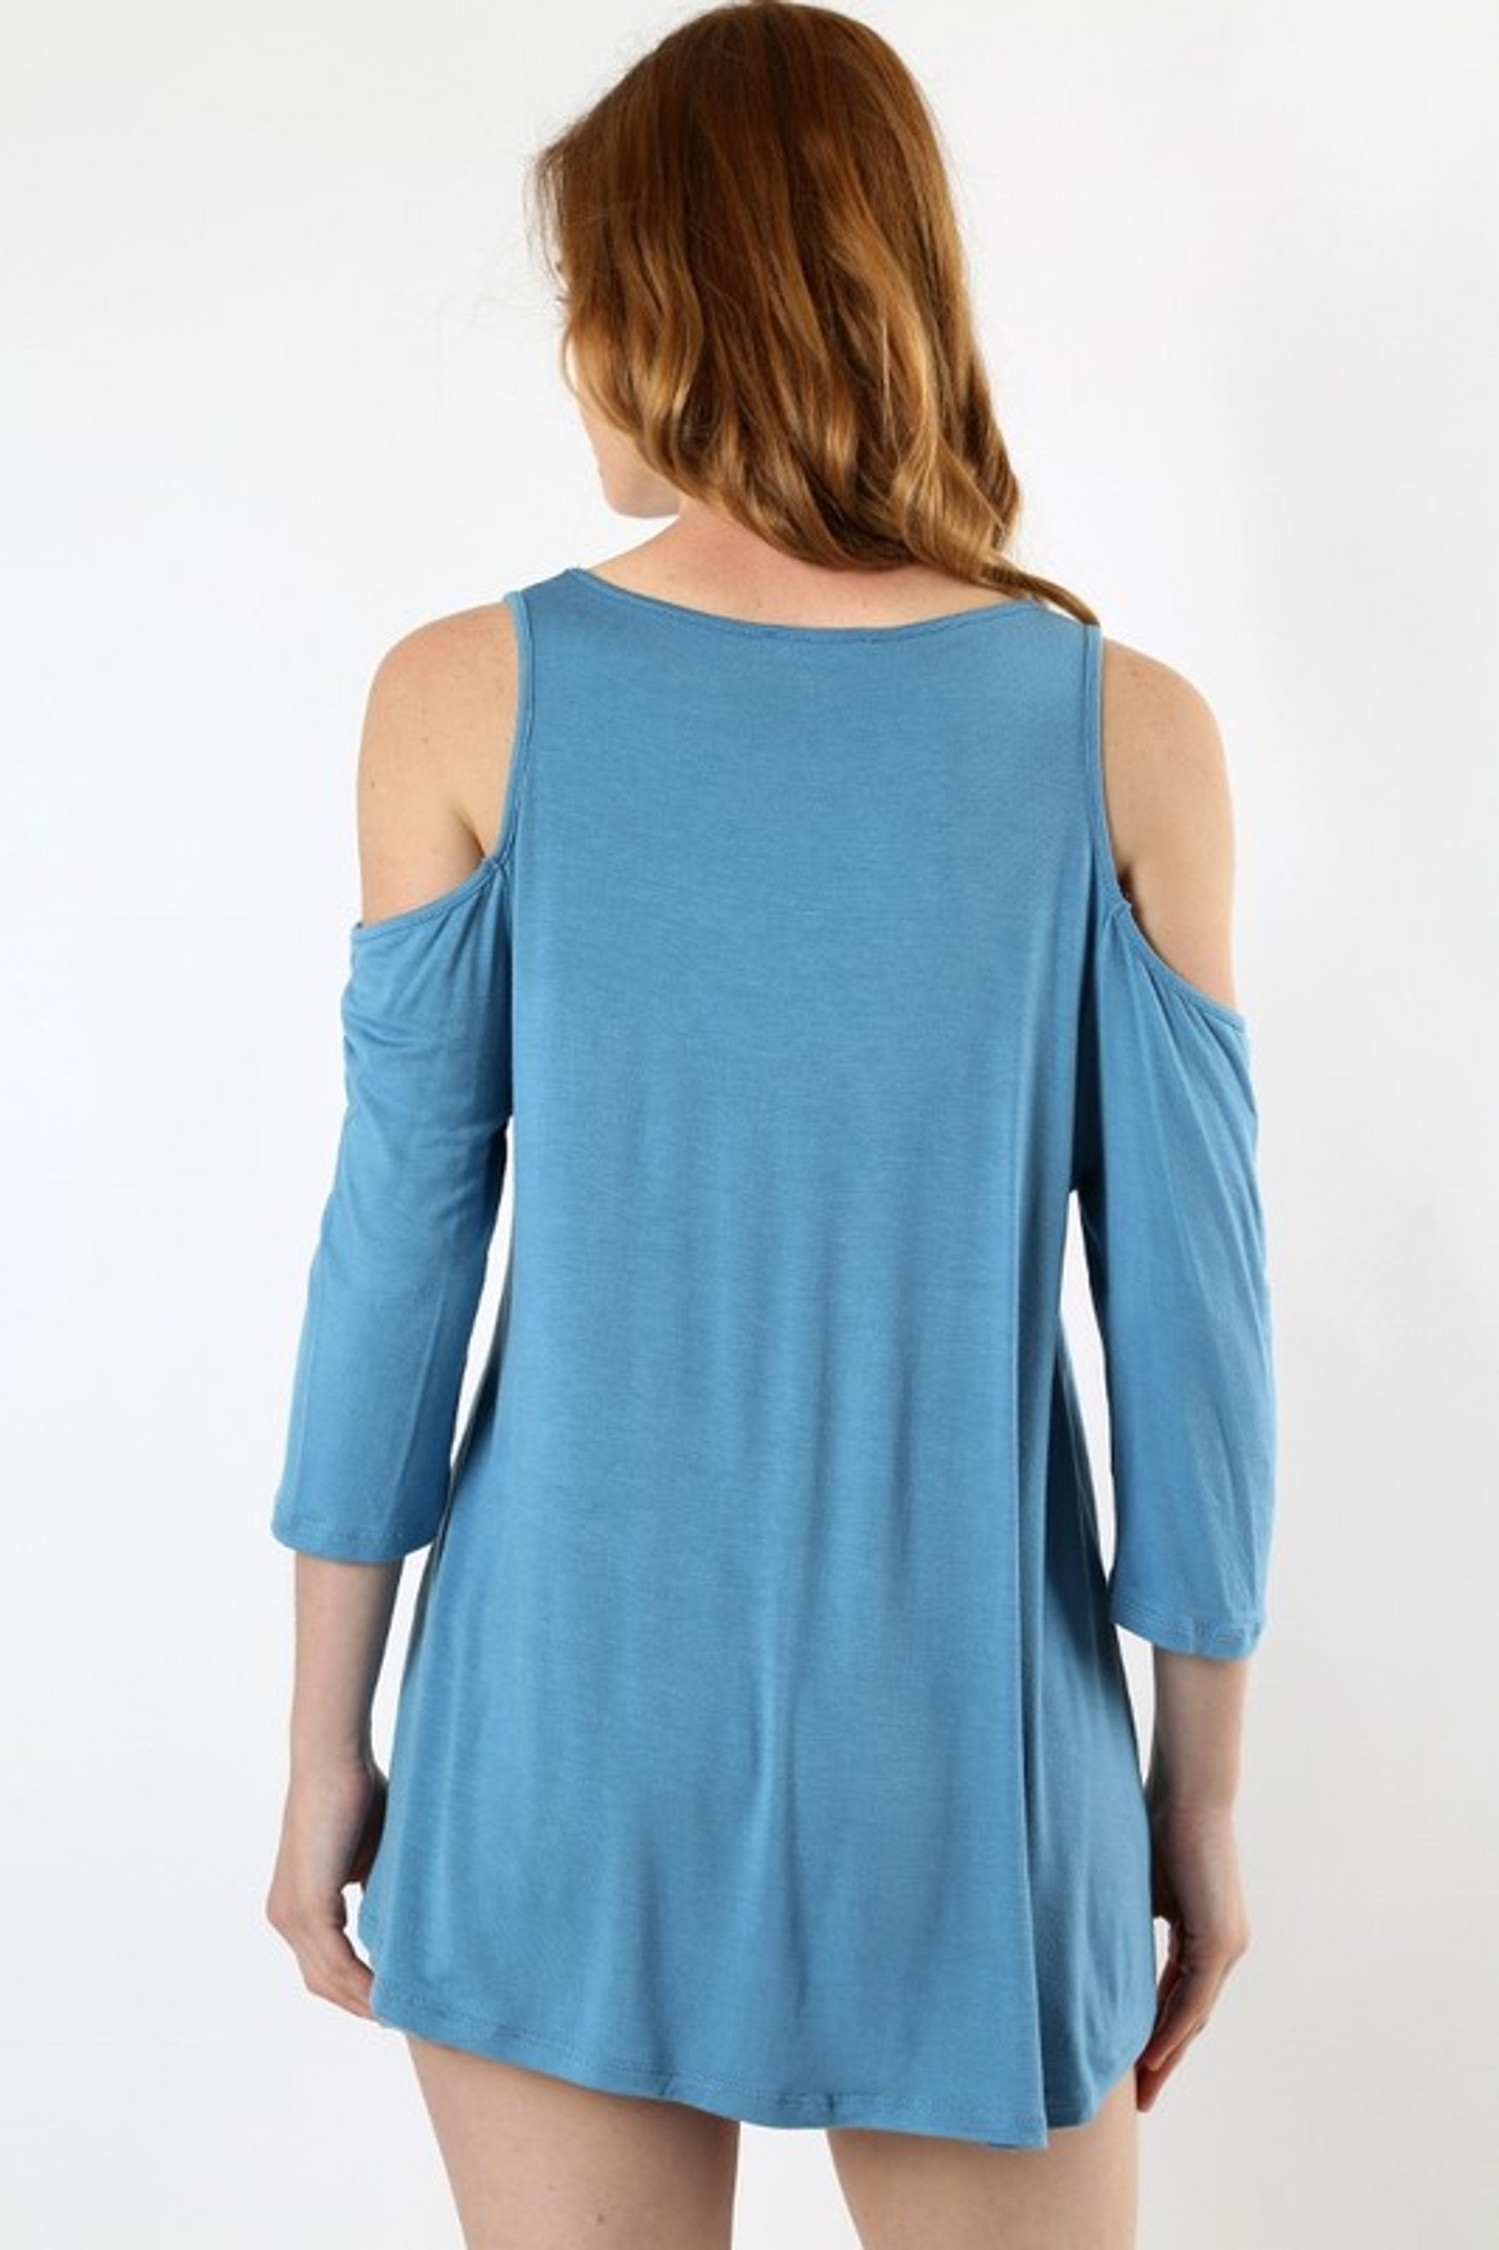 Premium Loose Fit Cold Shoulder Rayon Top